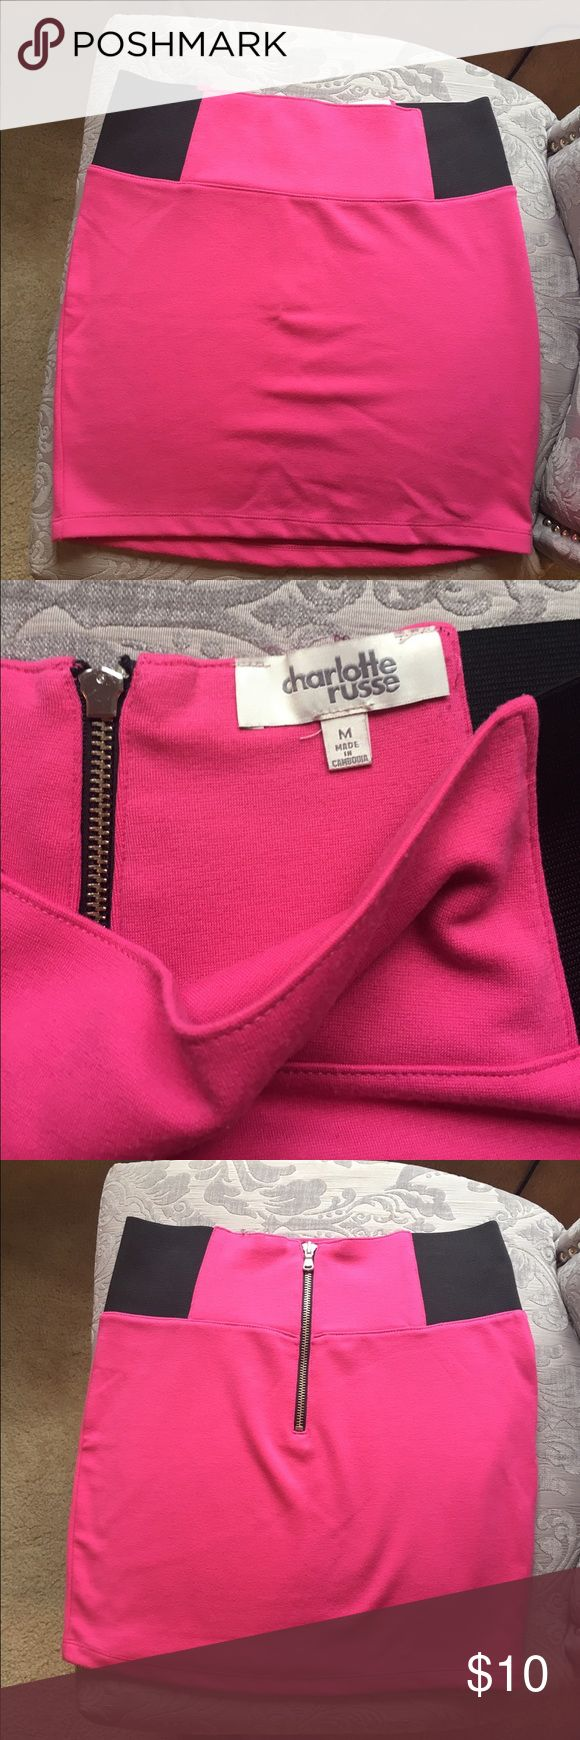 Hot Pink Charlotte Russe Bandeau Skirt This is super cute and comfortable bandeau skirt perfect for a night out with your girls! In good condition! Charlotte Russe Skirts Mini